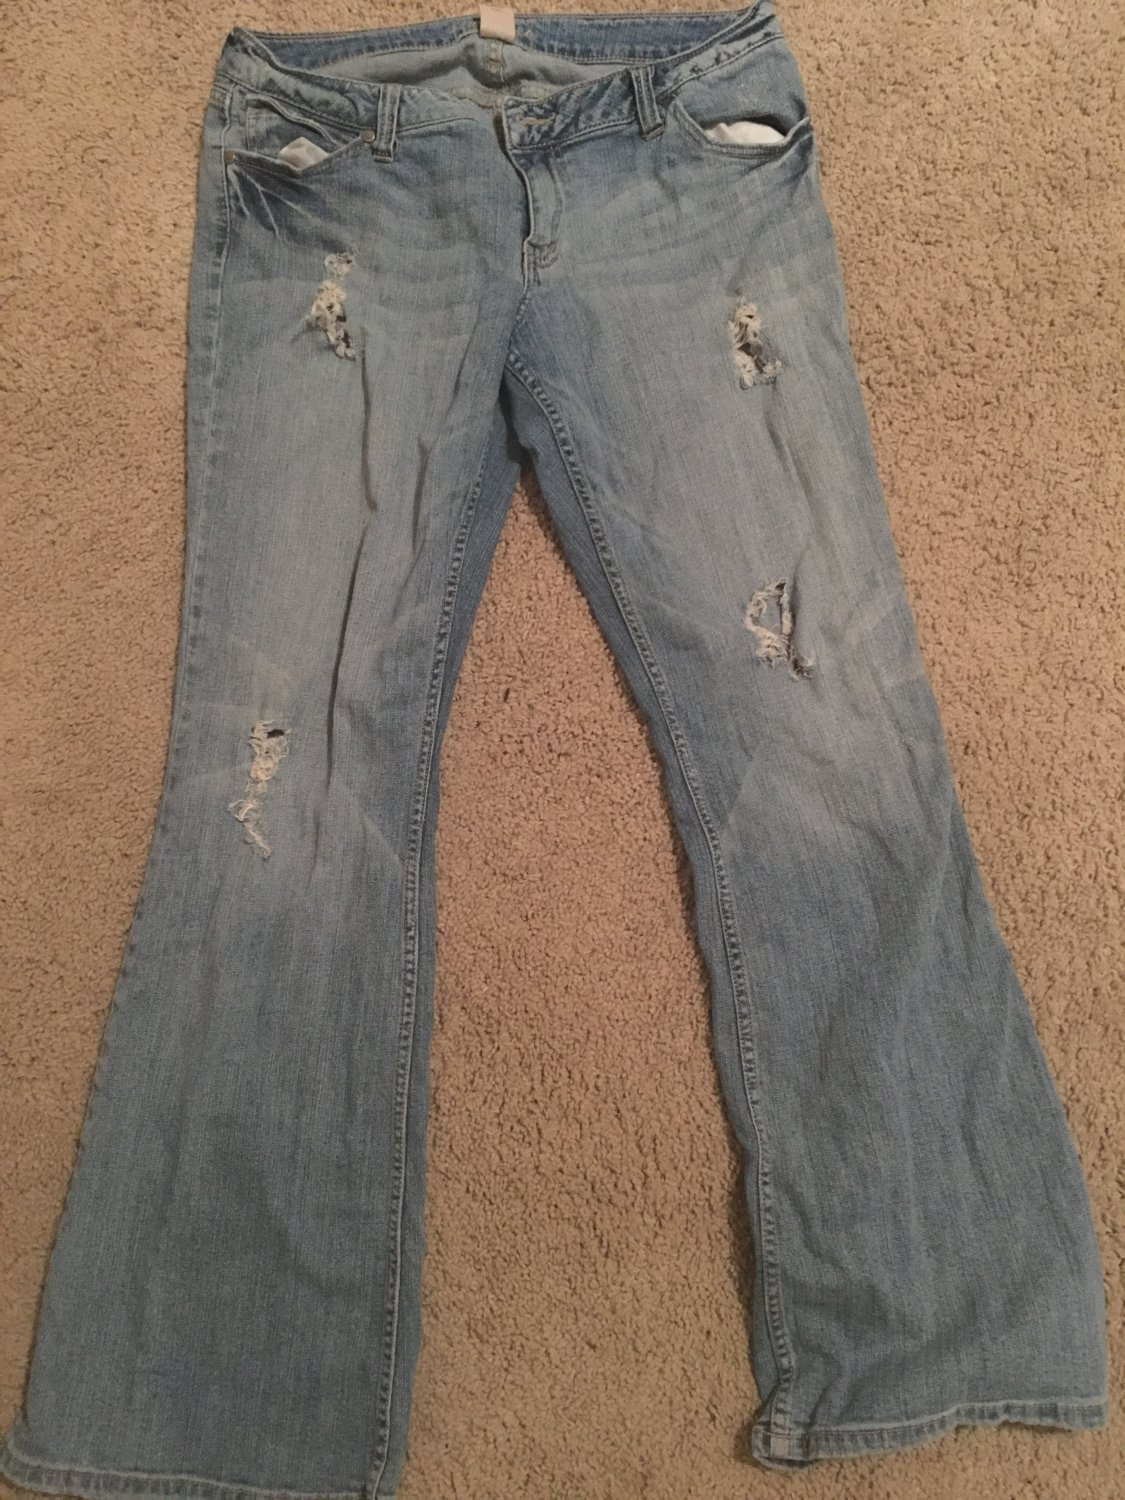 Hand Distressed Ripped Jean Shorts or Pants